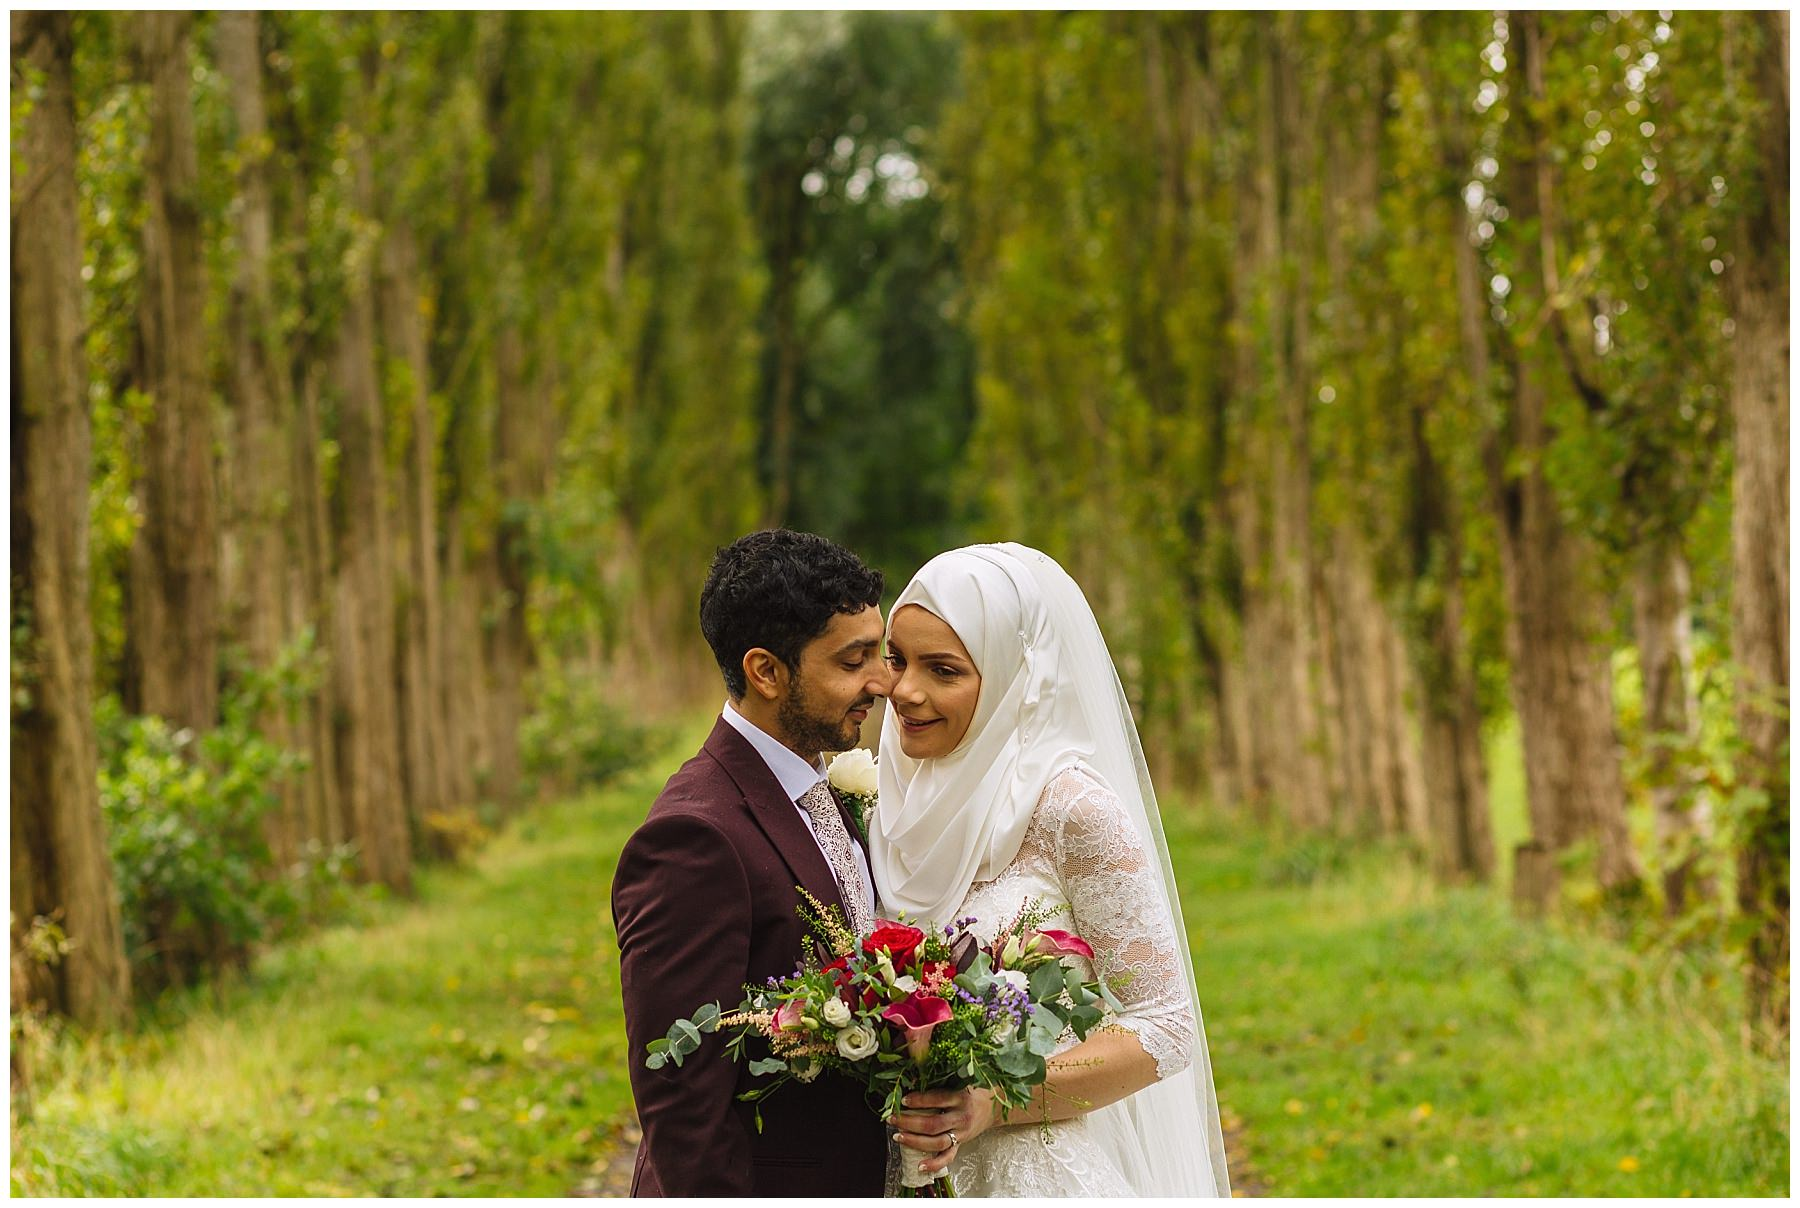 Wedding portraits at fletcher moss gardens